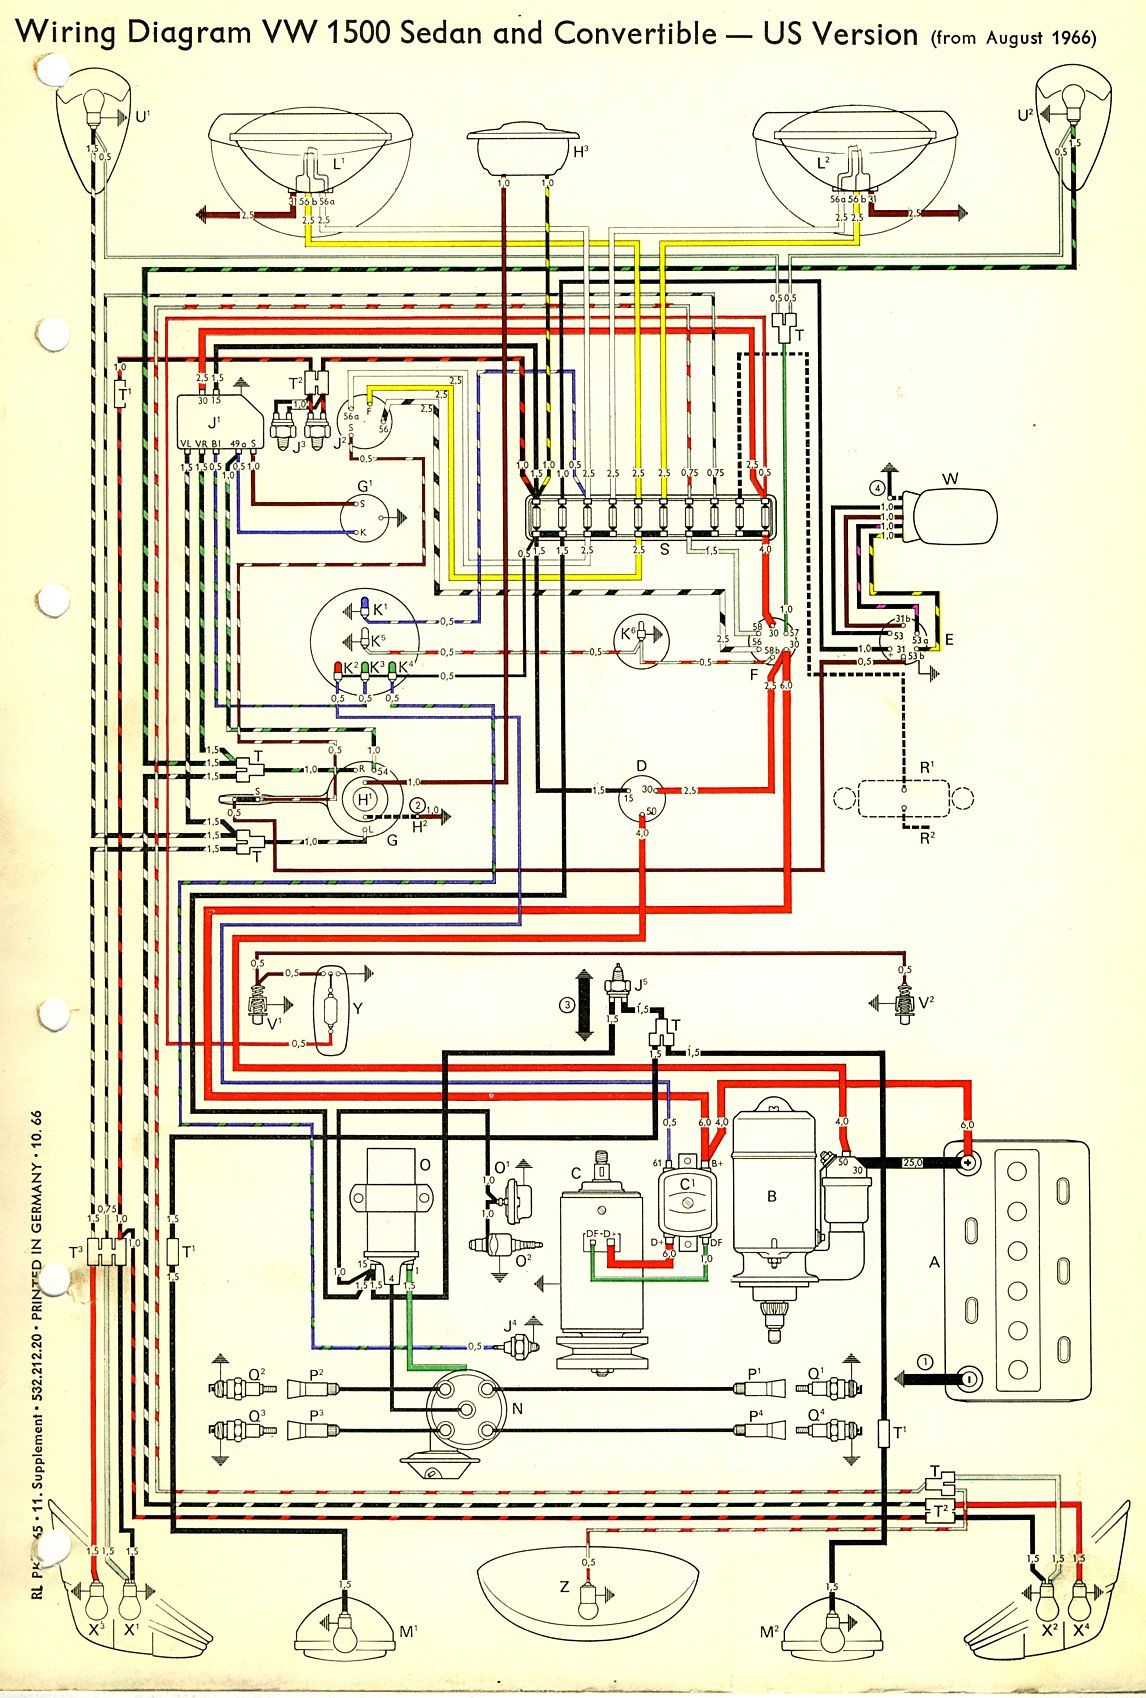 New Beetle Relay Diagram Wiring Schematic 2012 Jetta Fuse Box Location Super Harness Archive Of Automotive U2022 Vw